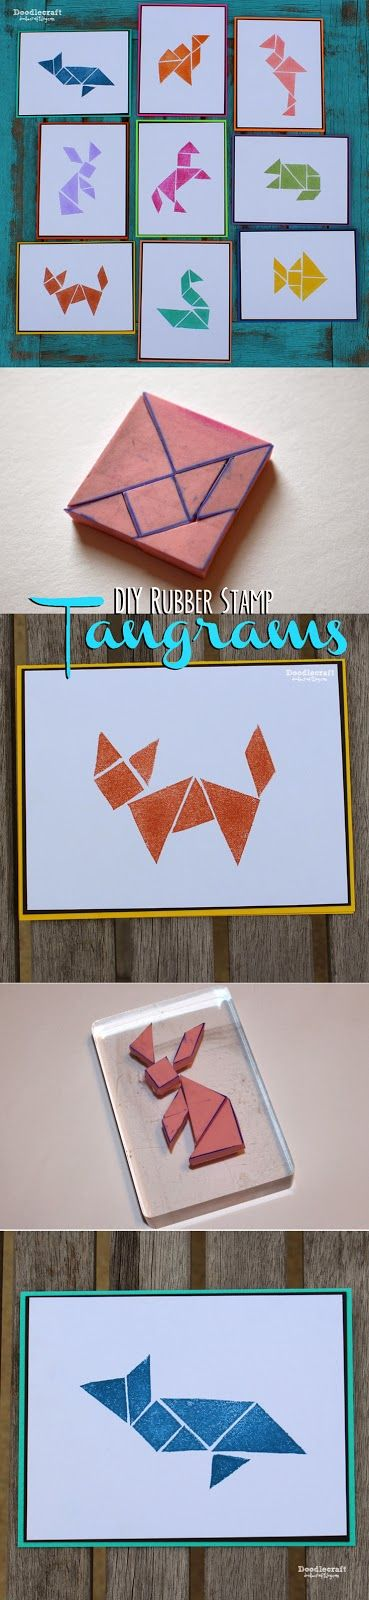 DIY Create Your Own Tanagram Stamps Great Gift Idea